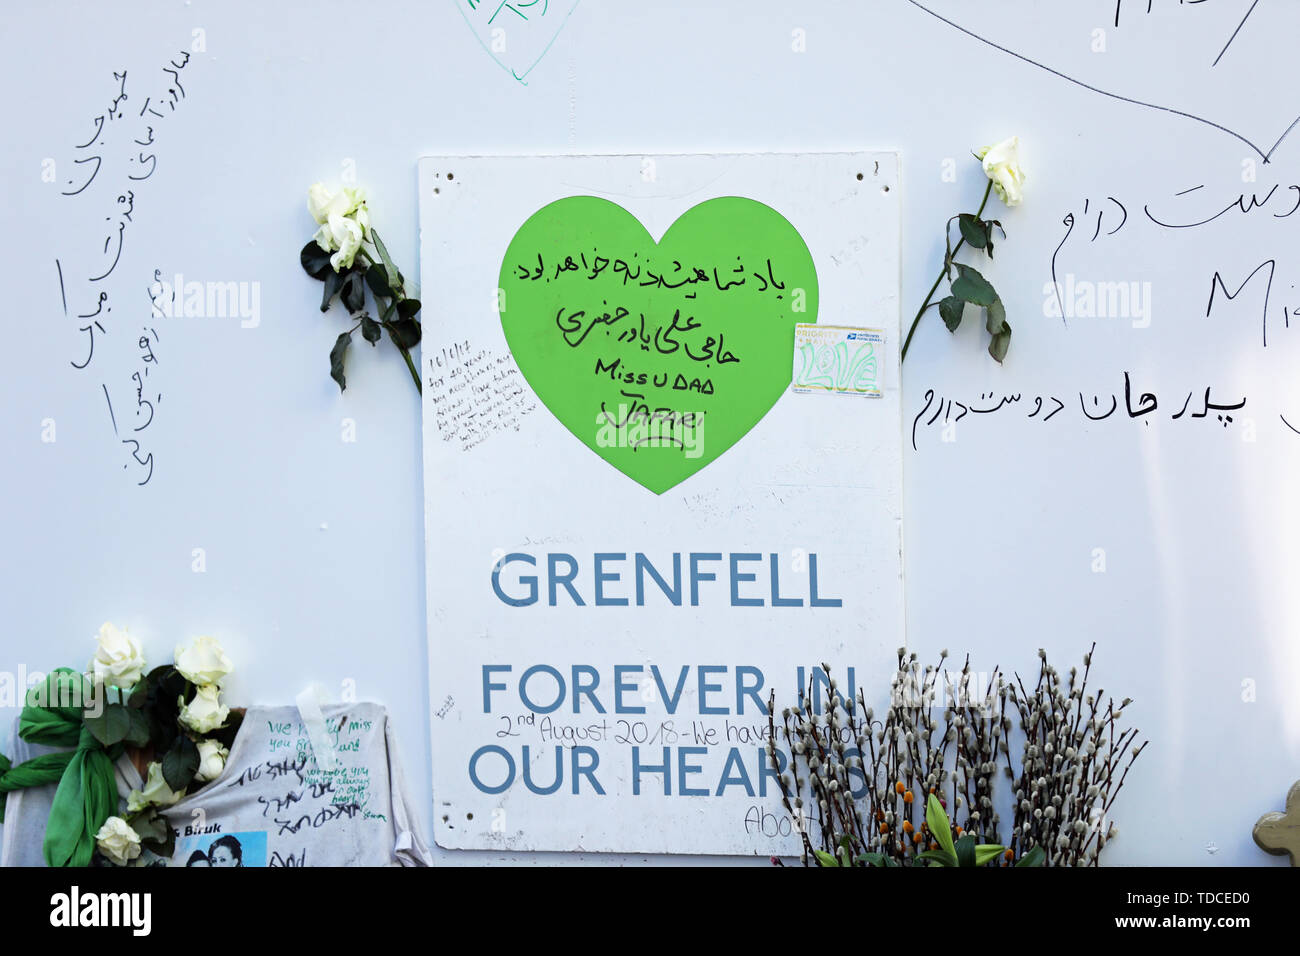 Messages left on a board outside Grenfell Tower, London, to mark the two-year anniversary of the tower block fire in memory of the 72 people who lost their lives. - Stock Image